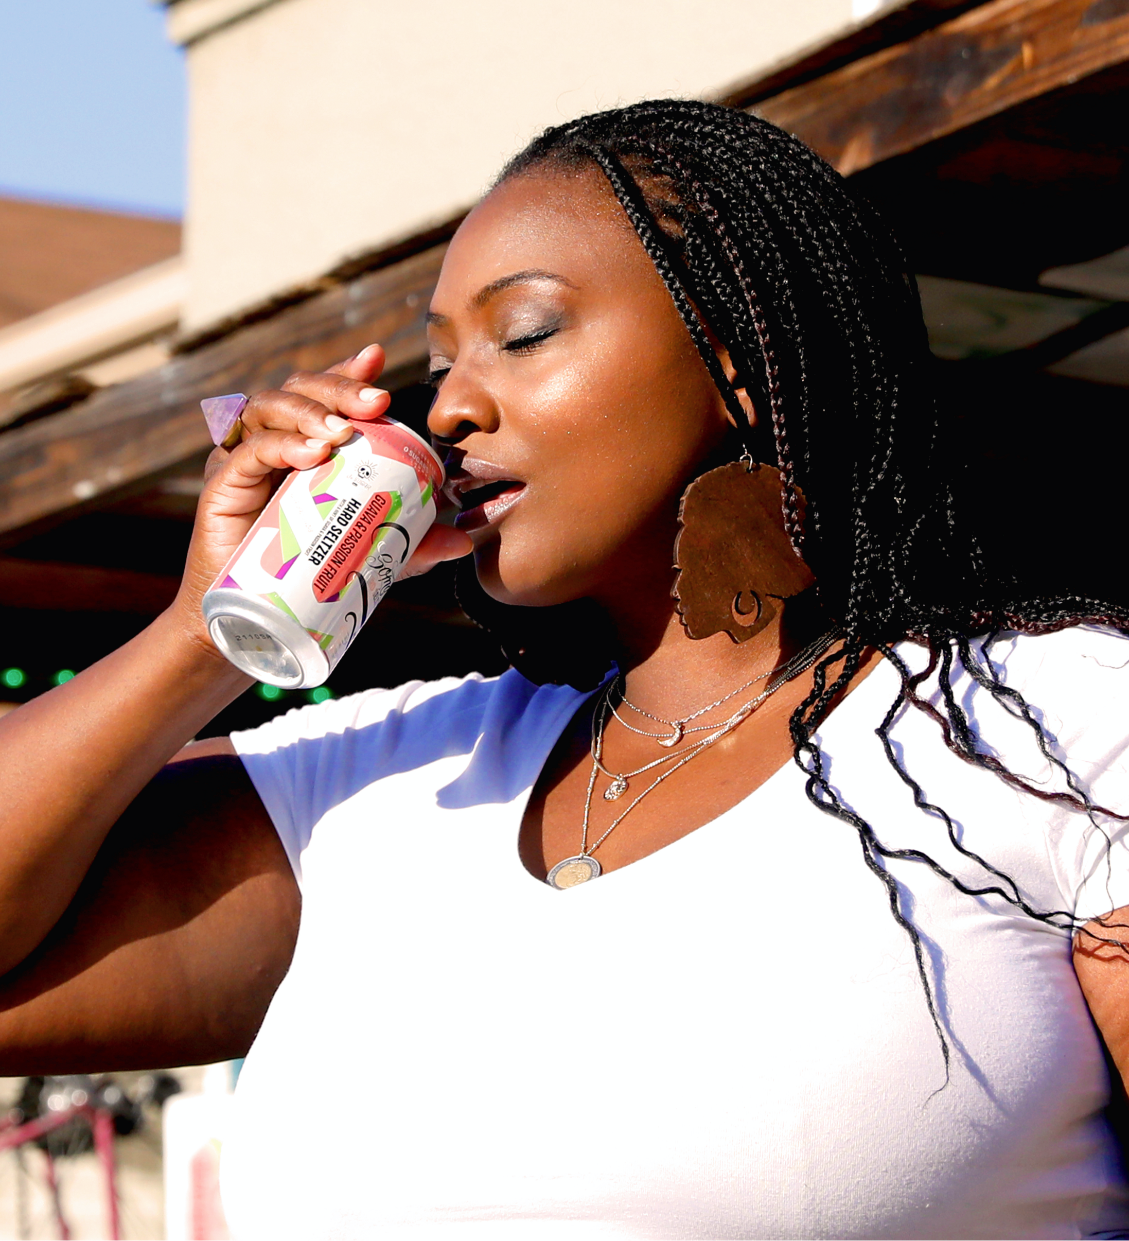 A woman enjoying a can of SOMA Hard Seltzer by 21st Amendment Brewery